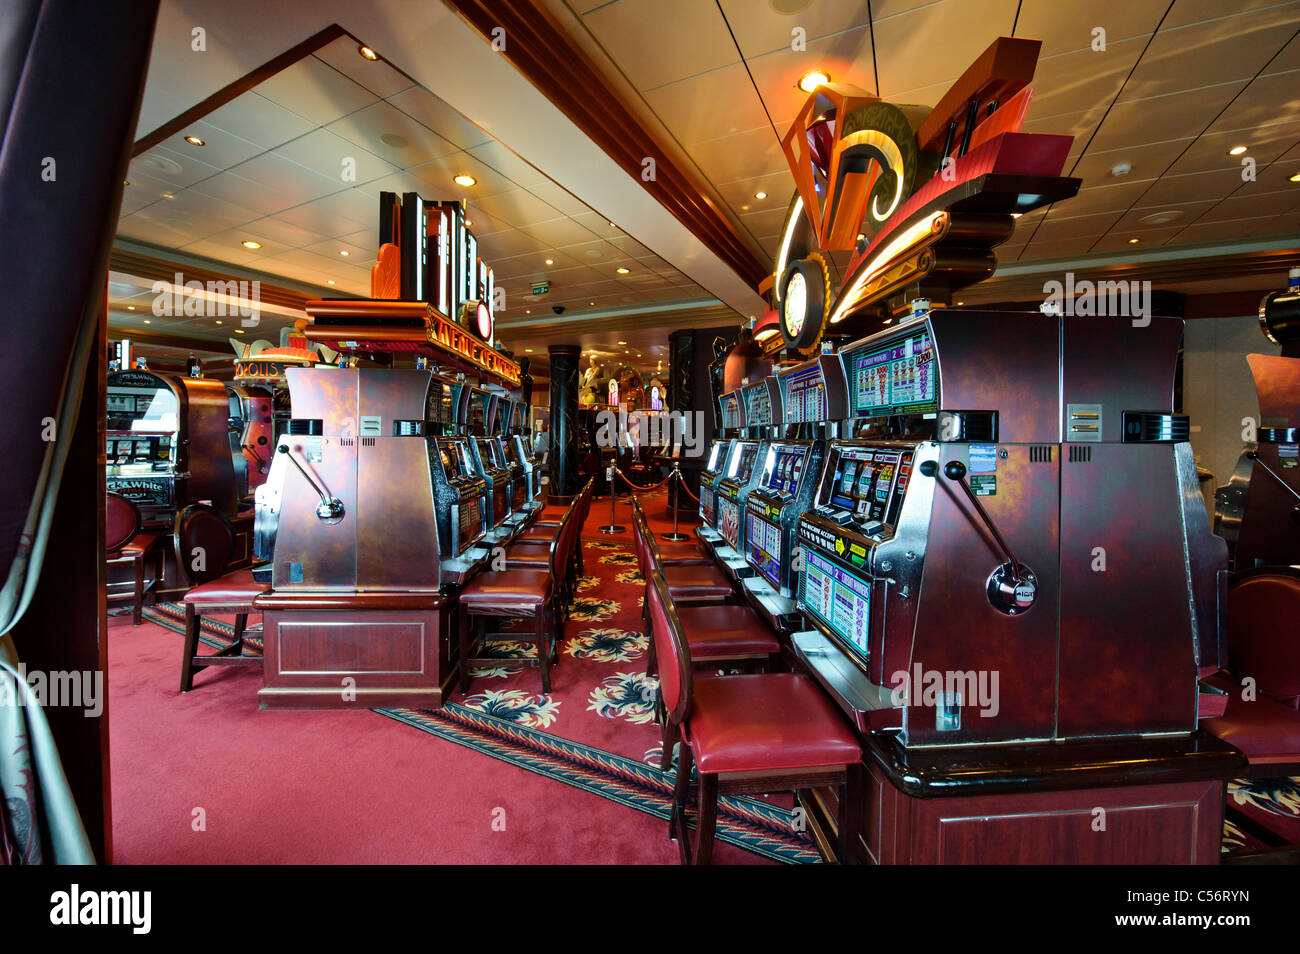 Slot Machines For Passenger Usage In The Empire Casino On Deck 2